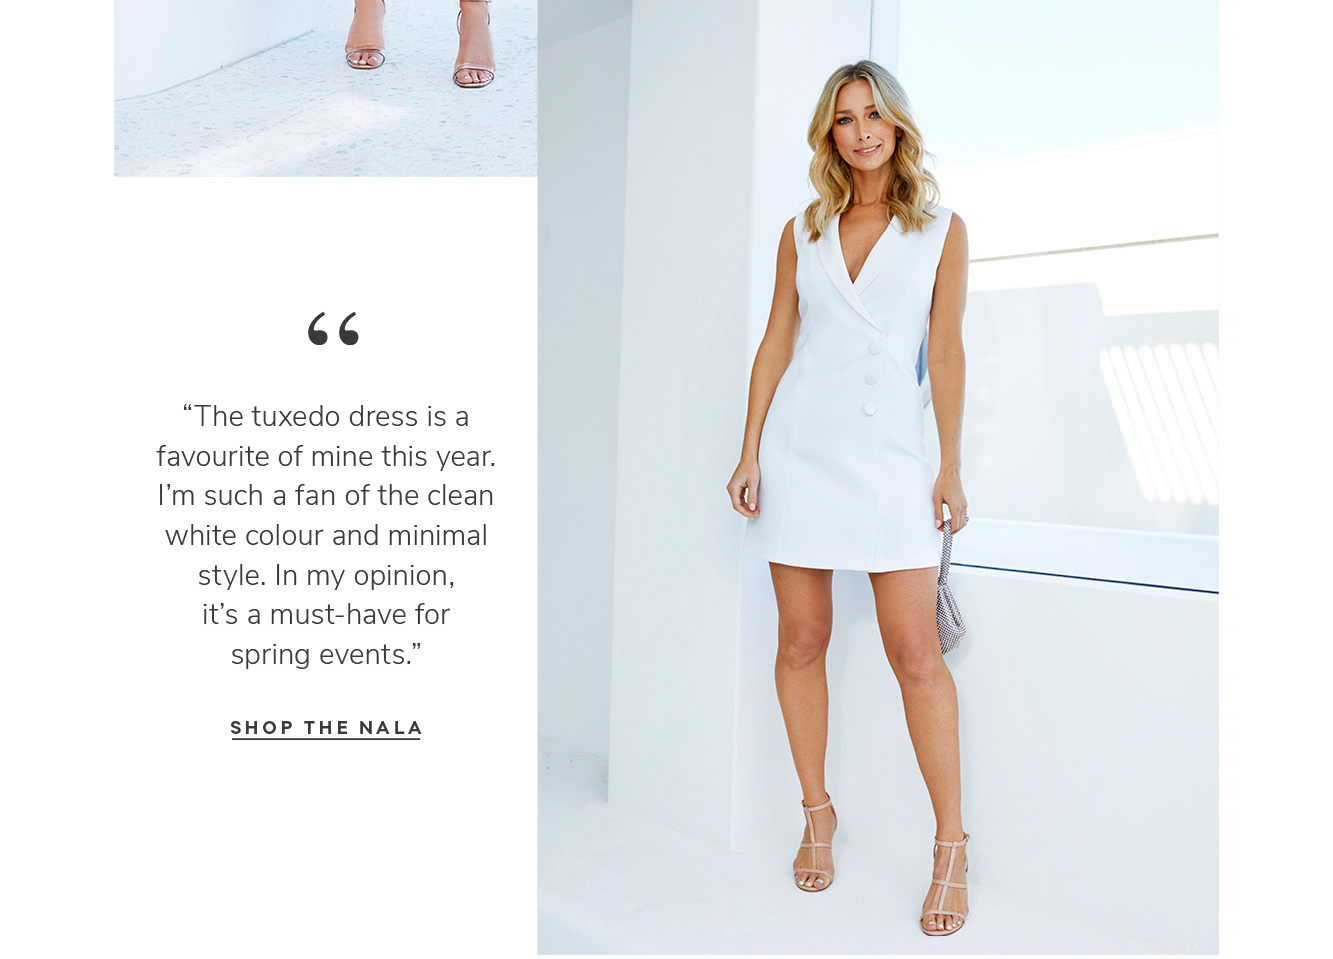 """""""The tuxedo dress is a favourite of mine this year. I'm such a fan of the clean white colour and minimal style. In my opinion, it's a must-have for spring events.†SHOP THE nala"""